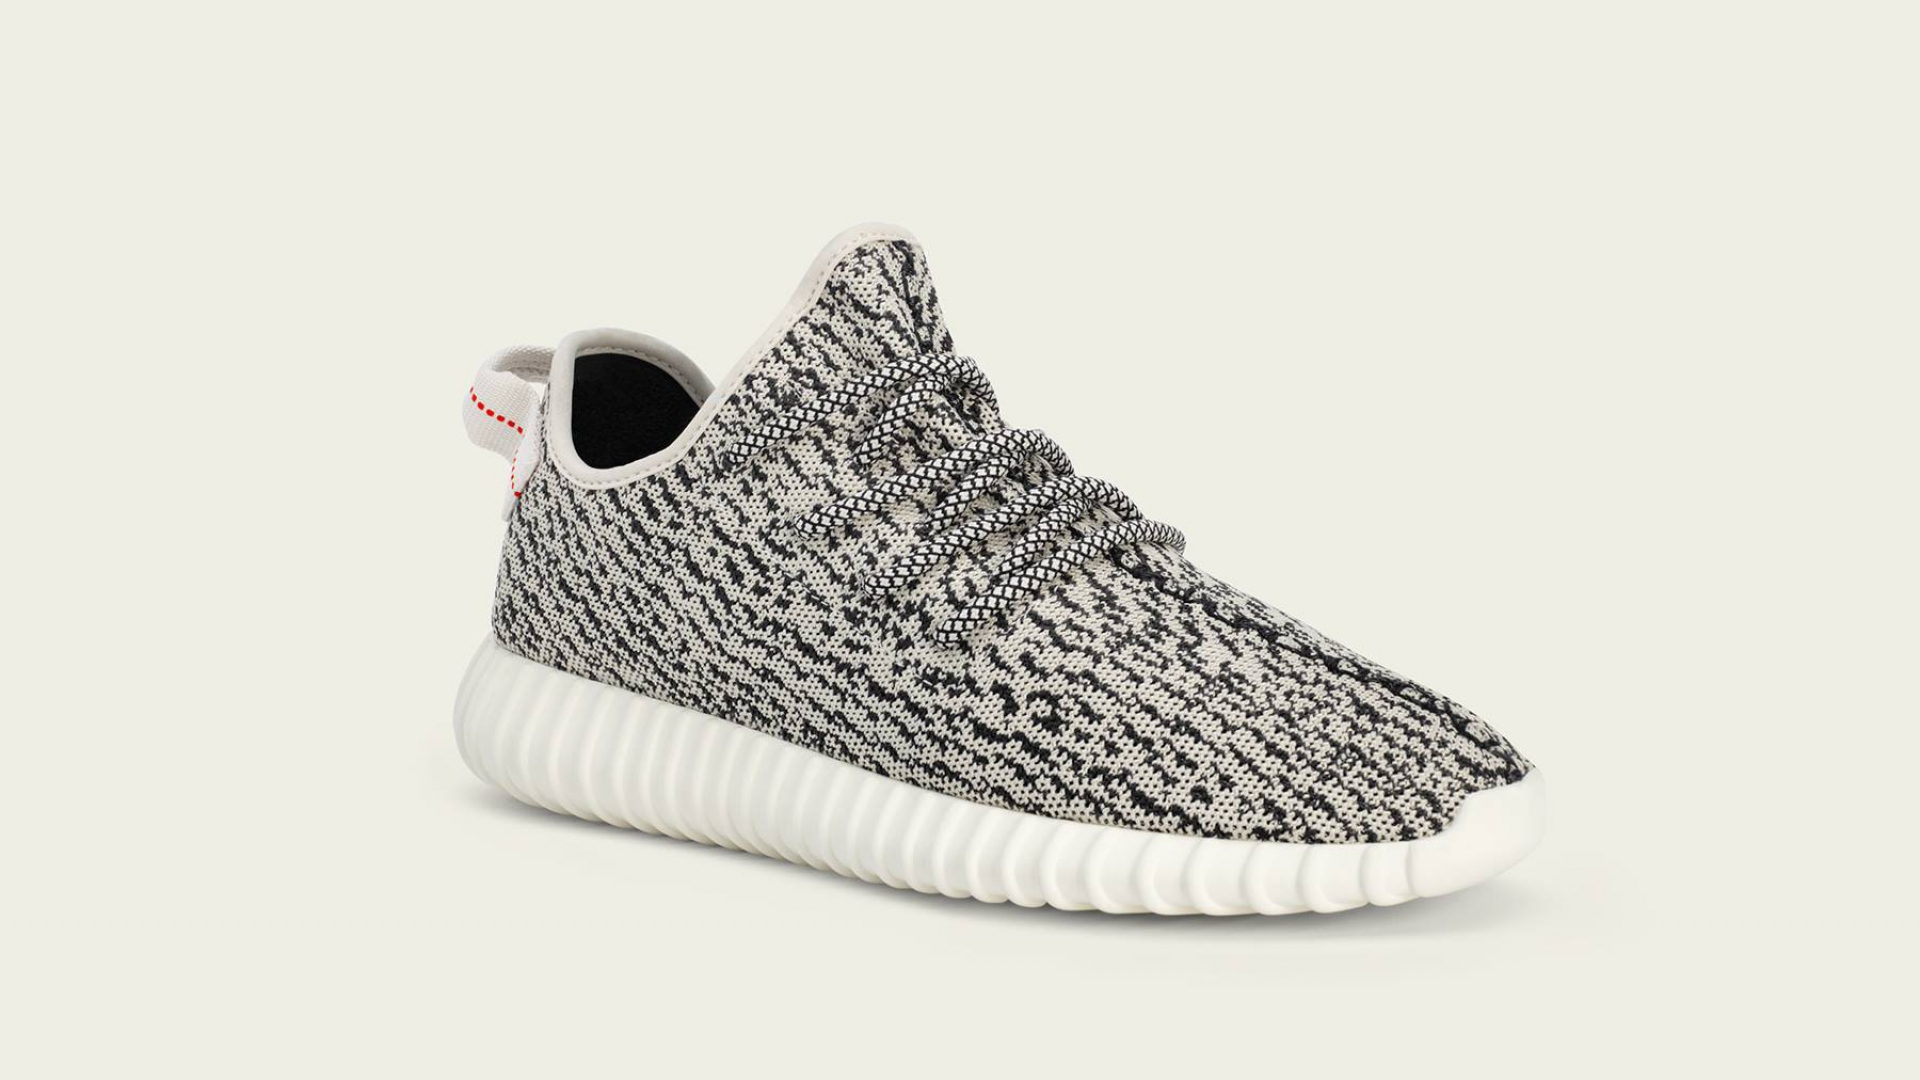 Yeezy boost 350 Adidas Sneakers Wallpaper Background Full HD 1080p 1920x1080